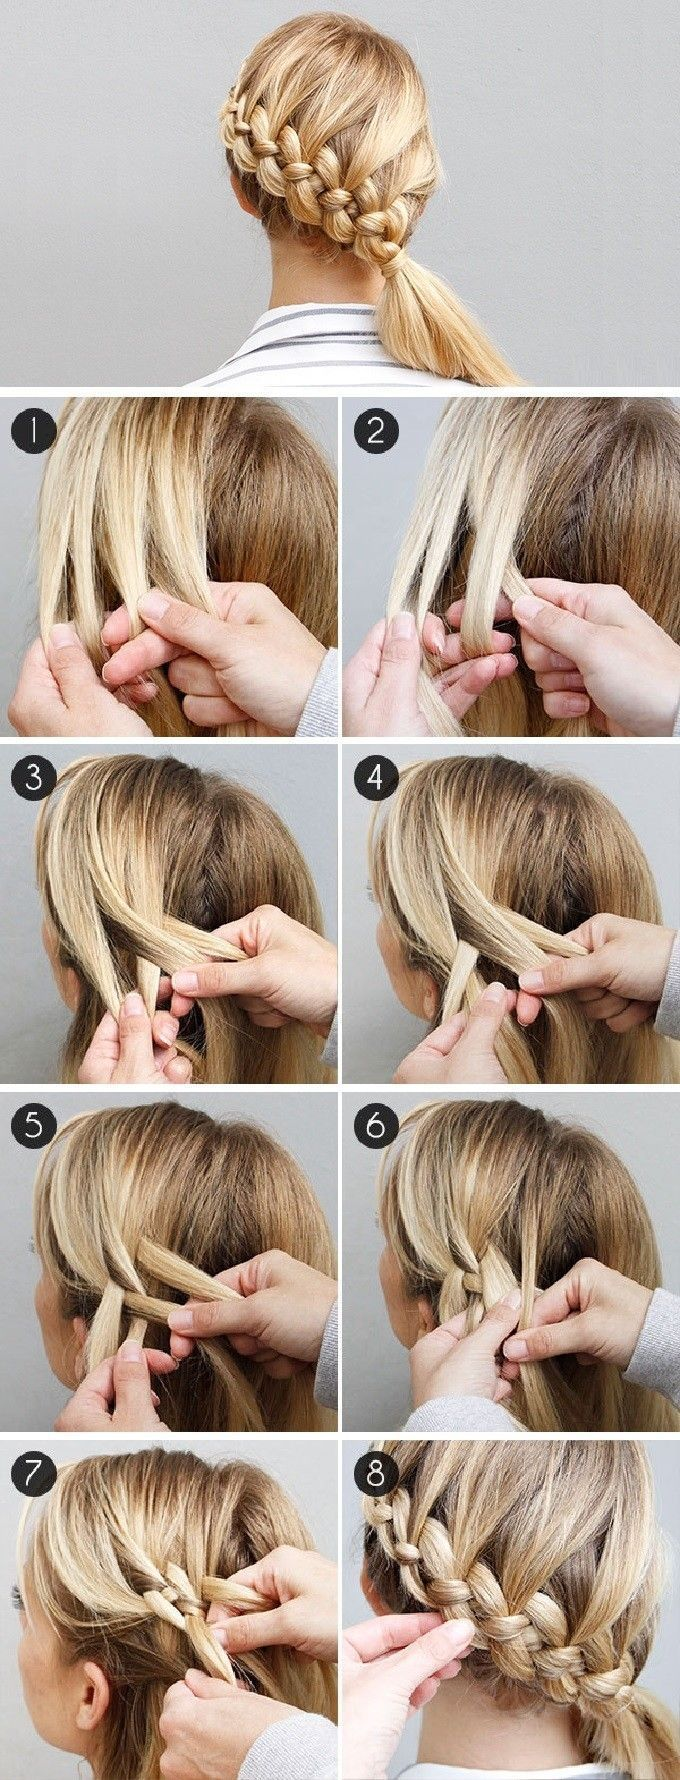 Easy Hairstyles 607 Best Hairstyles Images On Pinterest  Hair Ideas Hairstyle